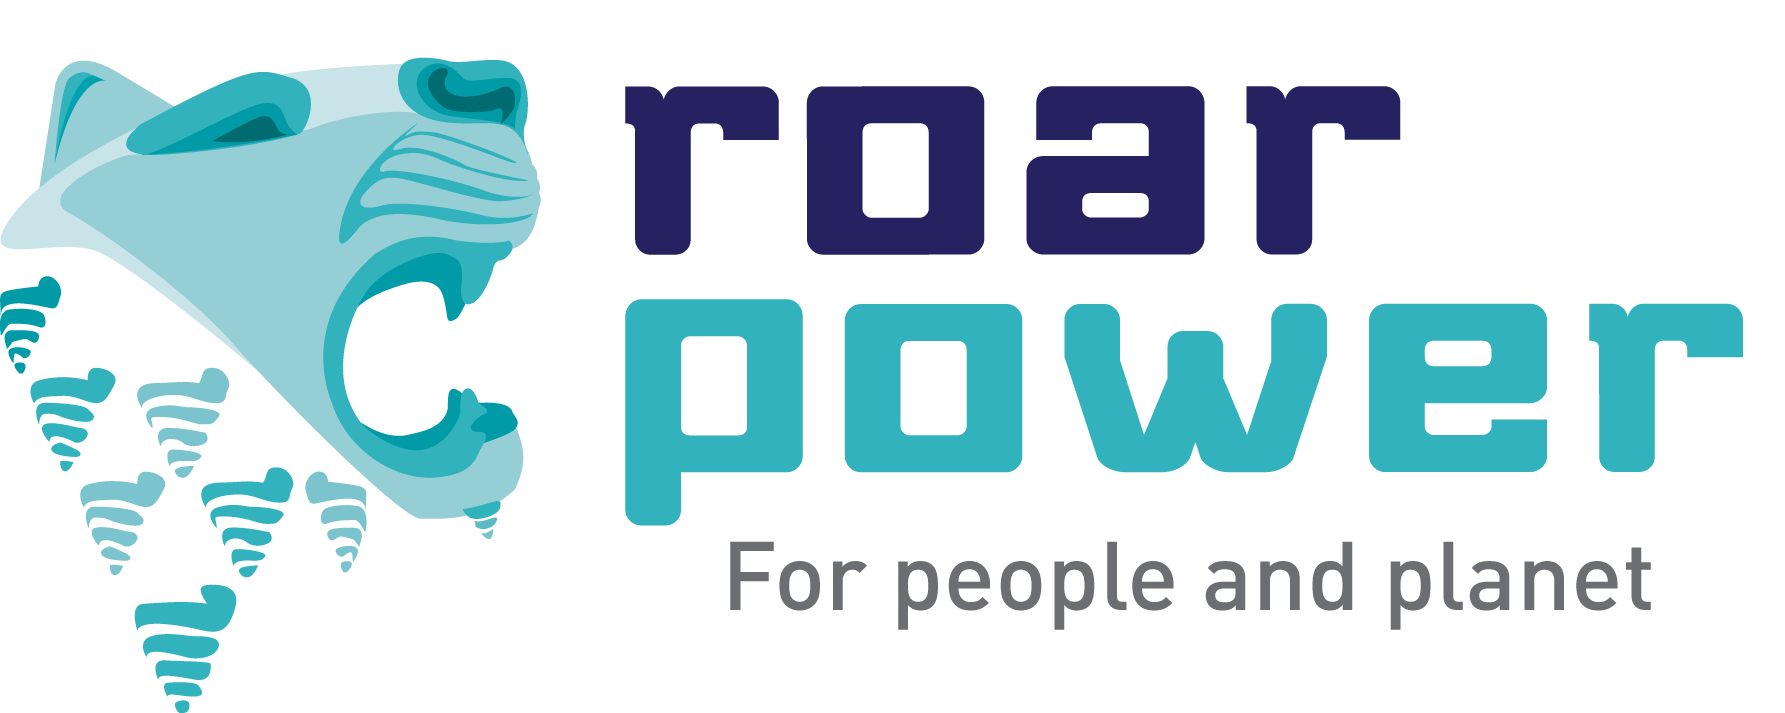 Roar Power logo